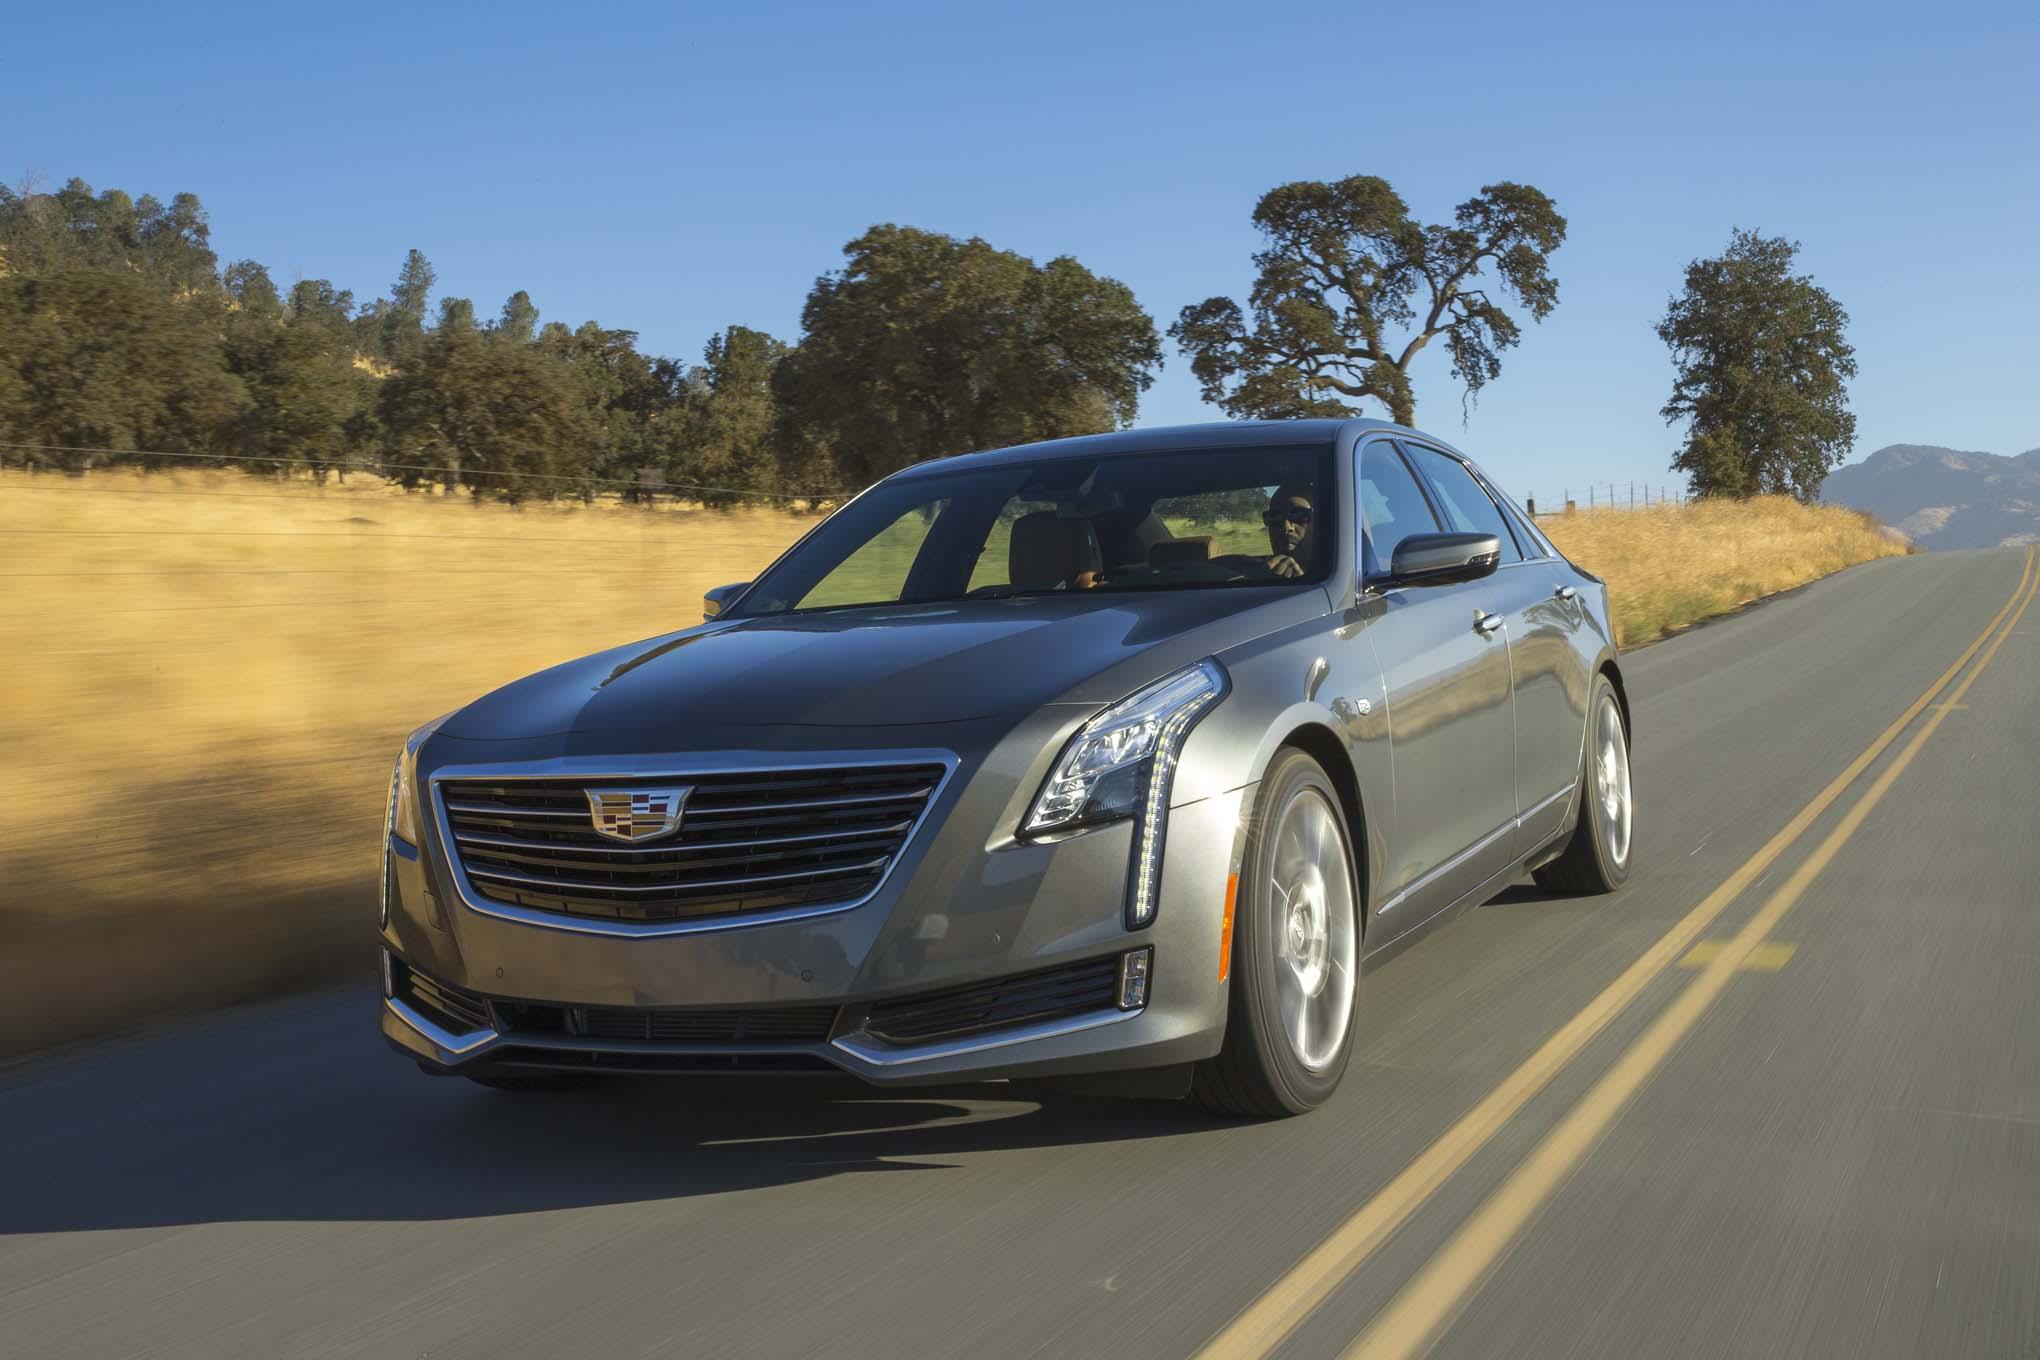 2017 Cadillac CT6 20T front three quarter in motion 03